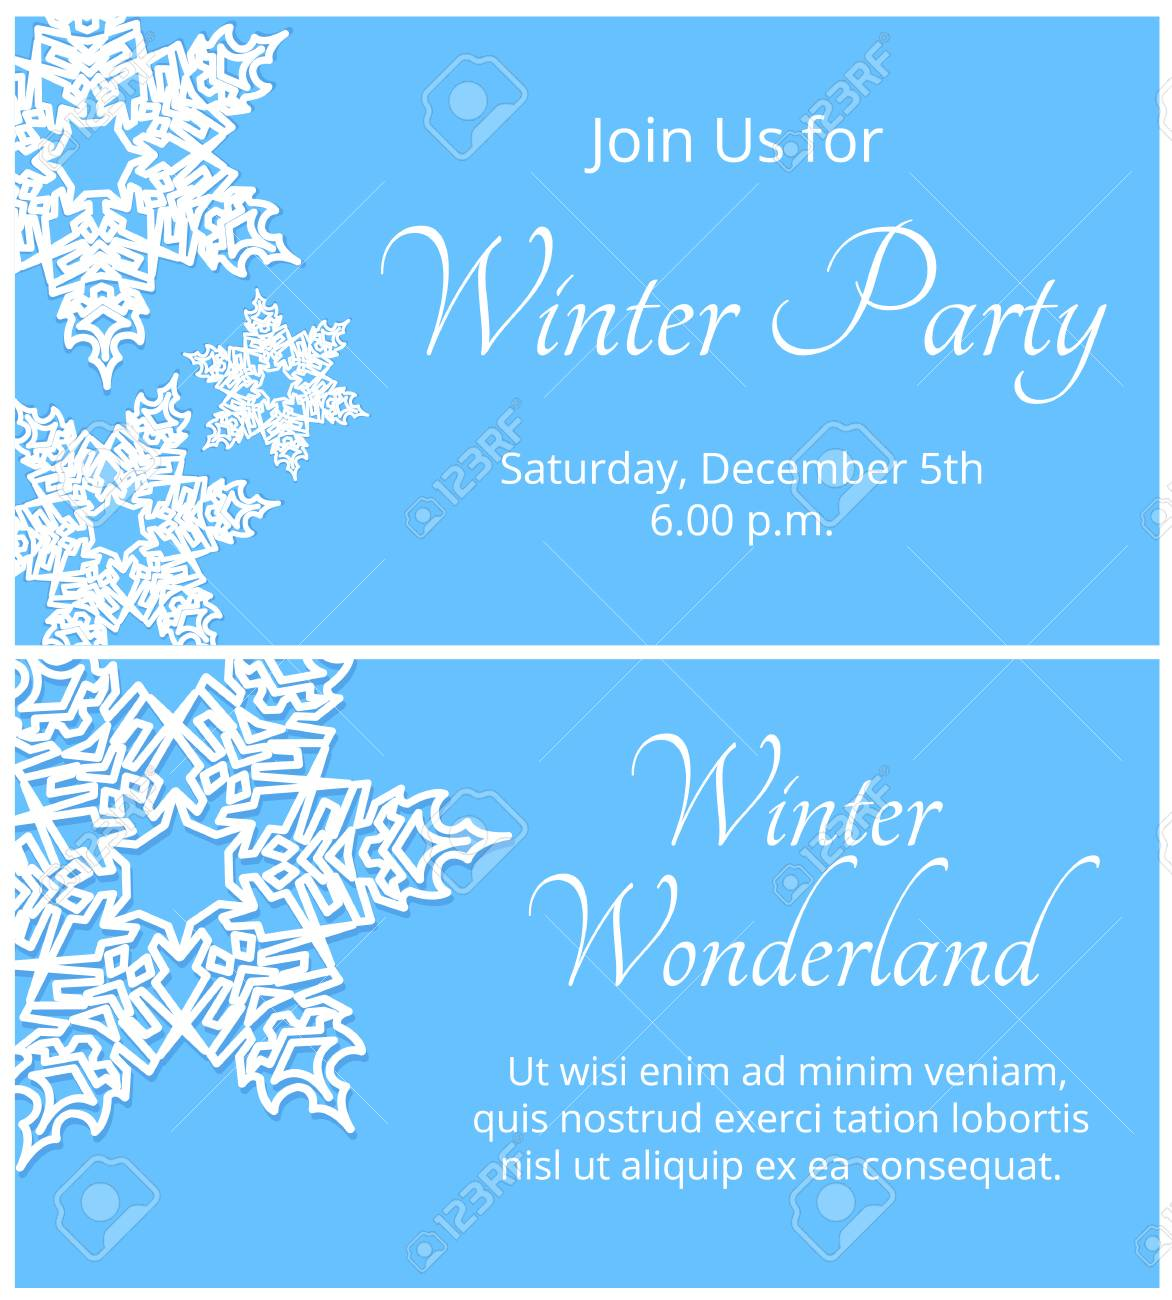 Winter Party Invitation Wpa Wpart Co